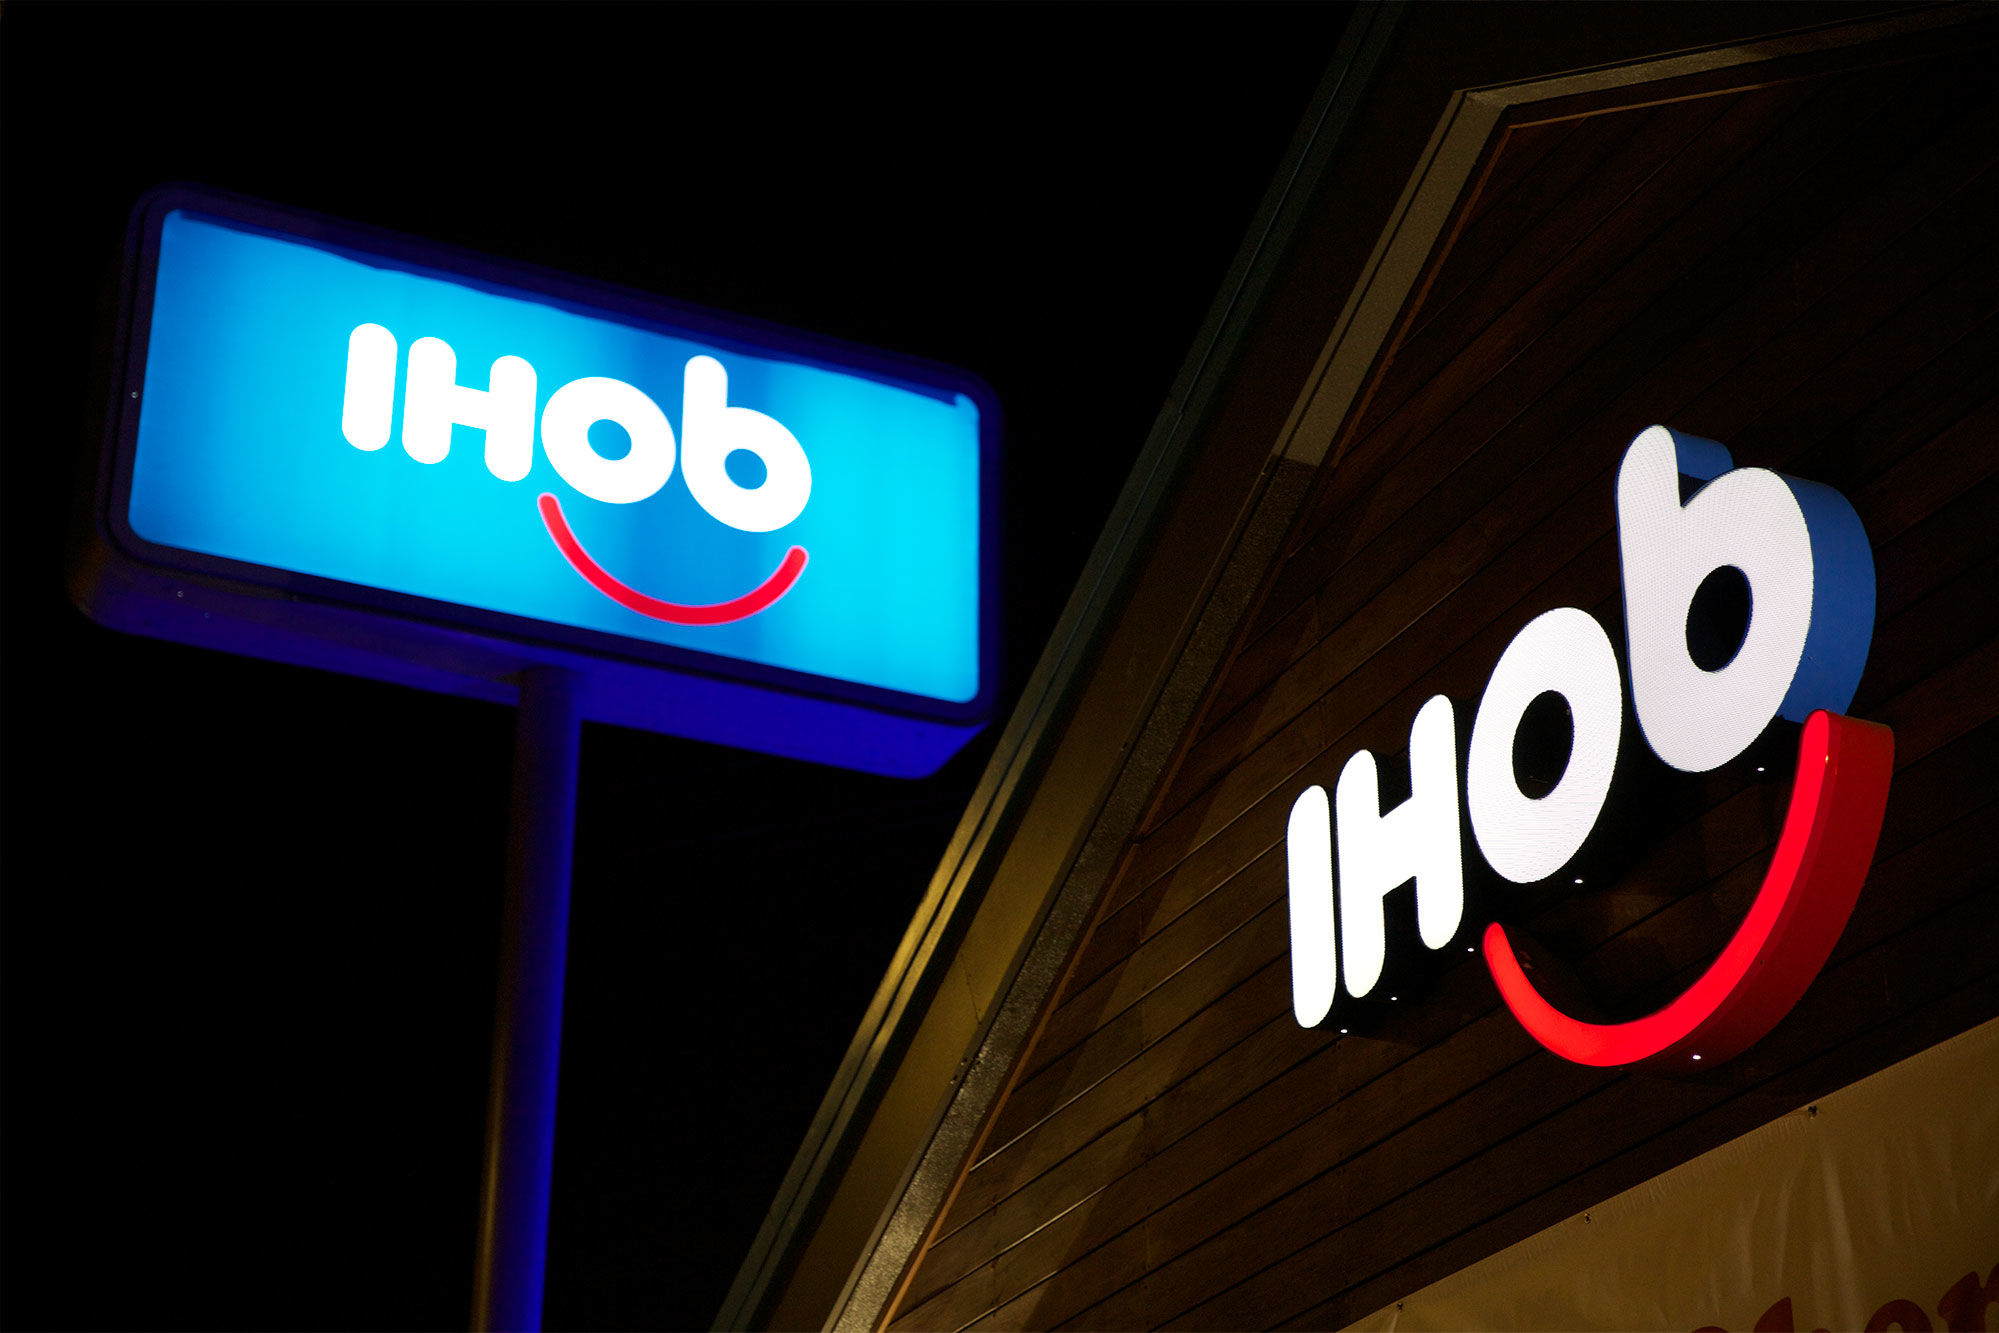 IHOP Changes Its Name To IHOb To Prove They Are 'Serious' About a New Menu Item